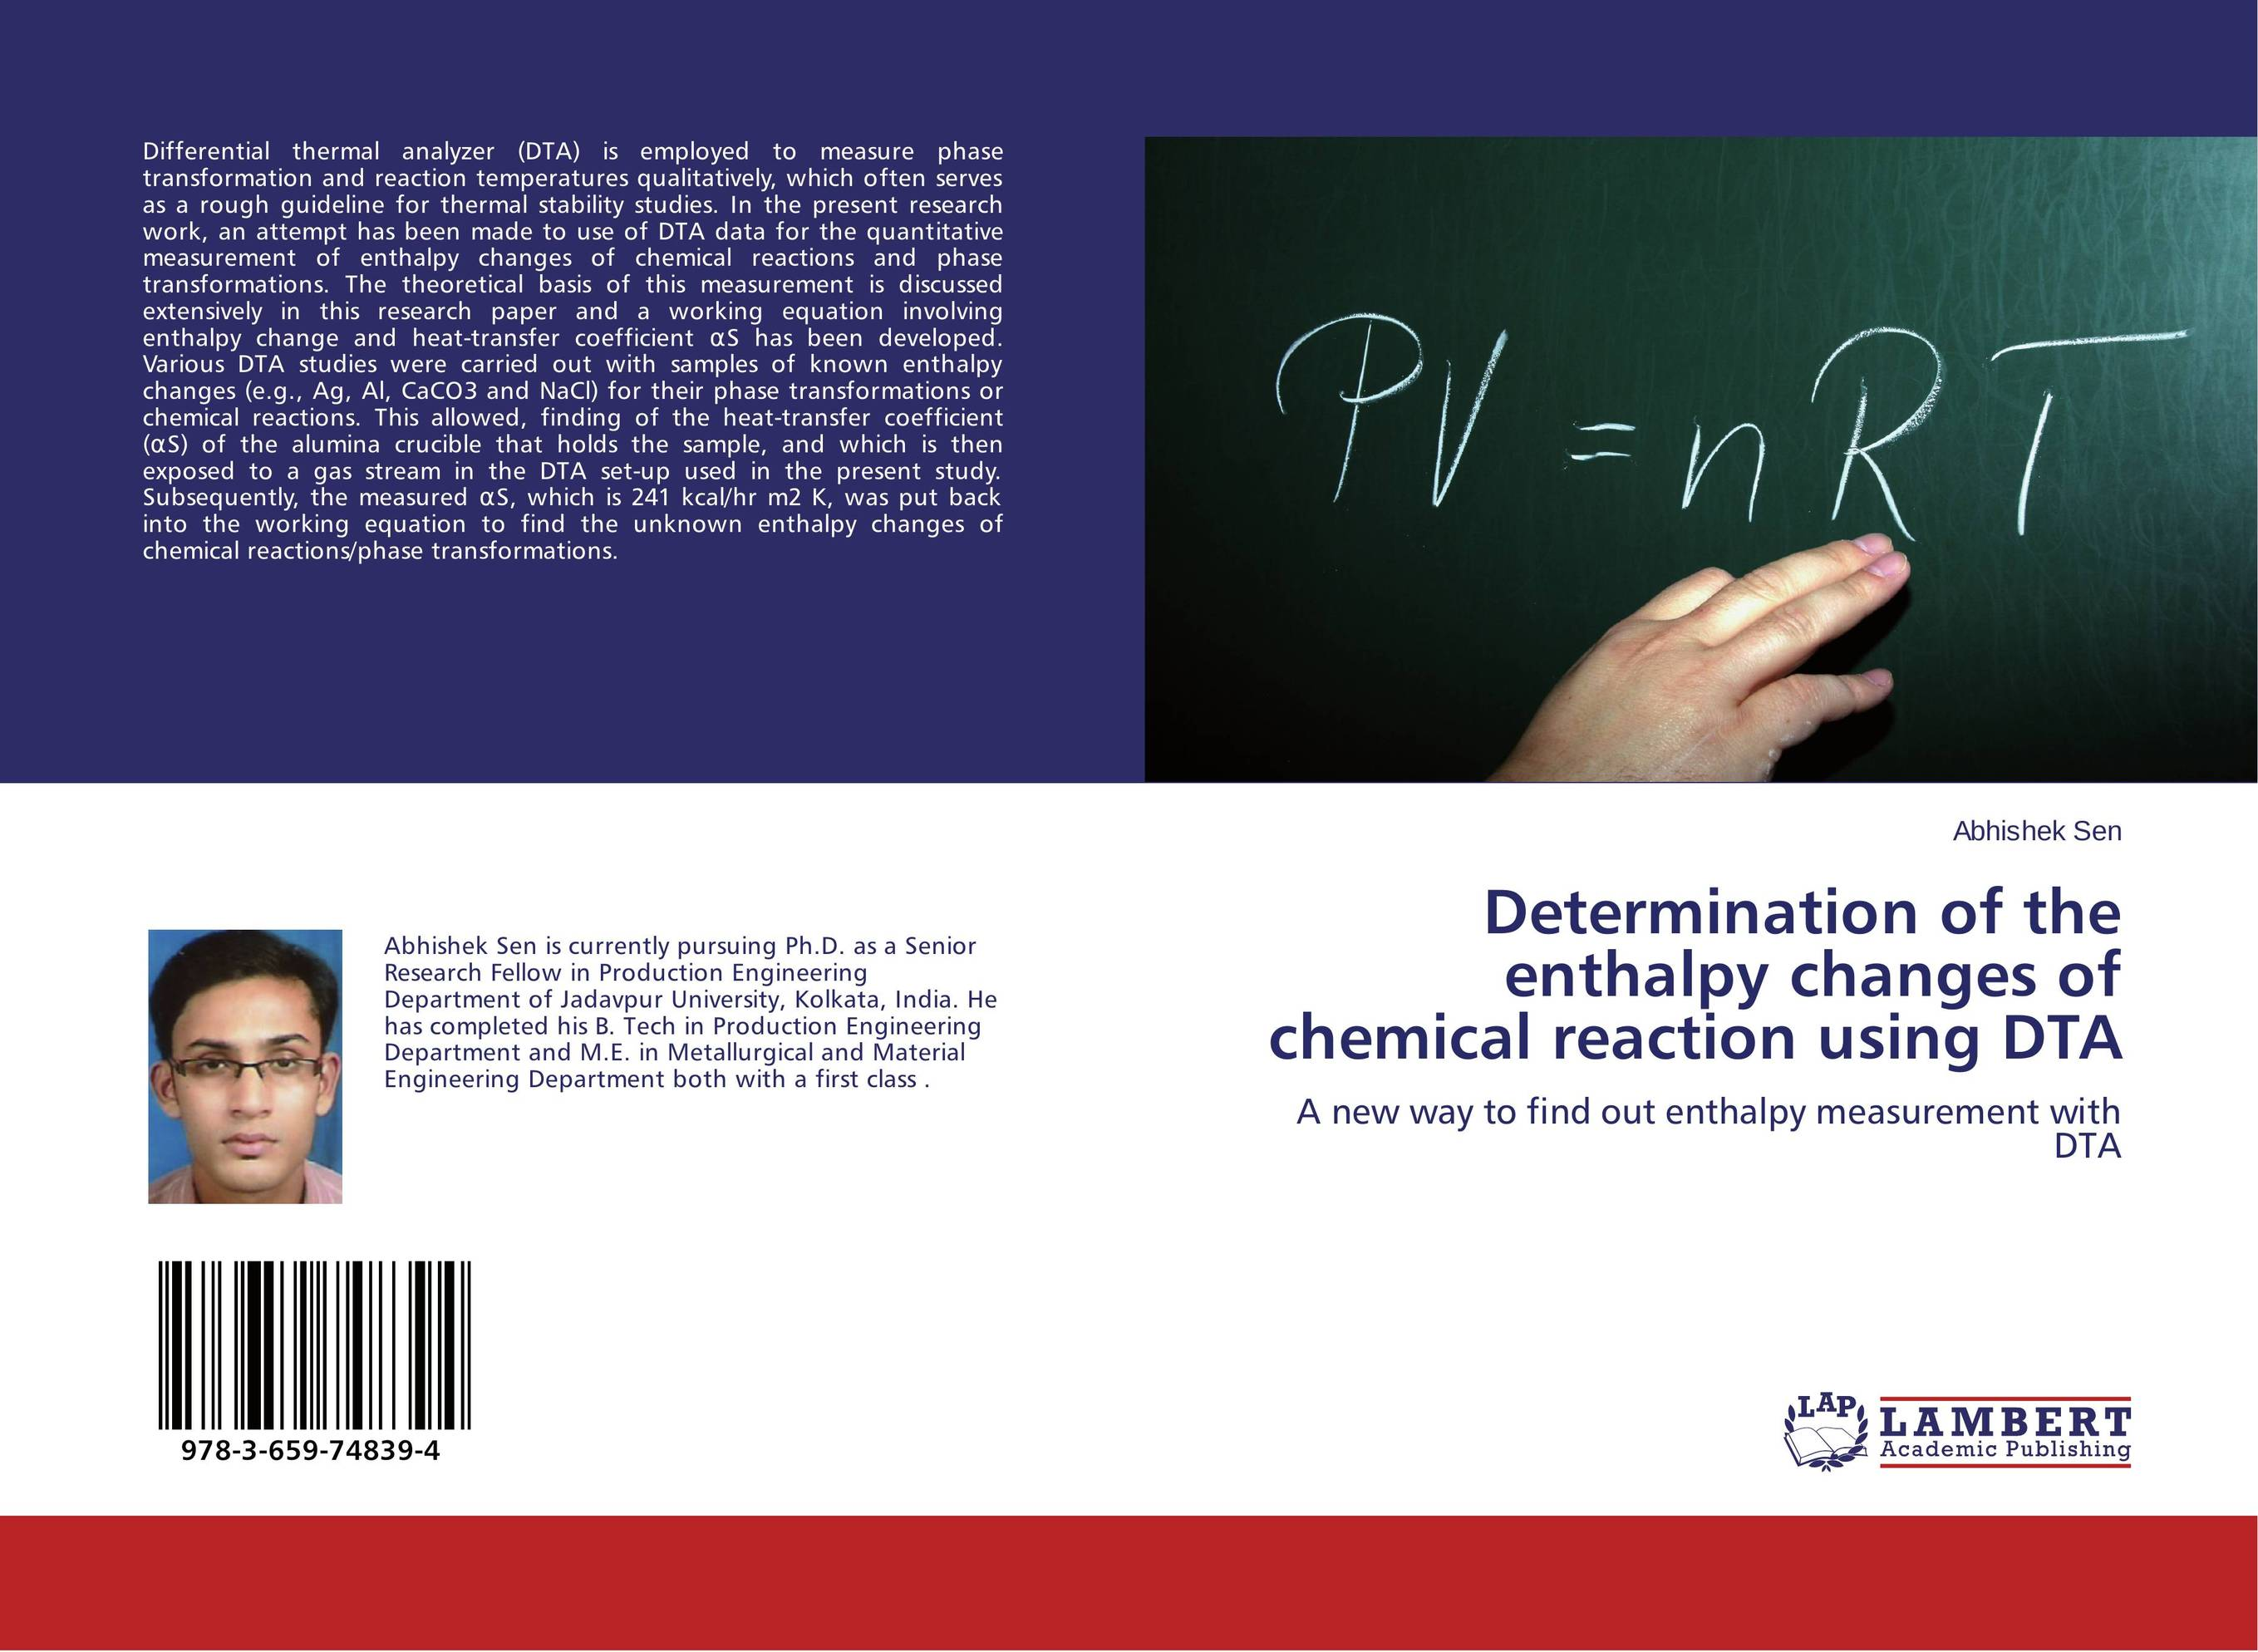 Determination of the enthalpy changes of chemical reaction using DTA